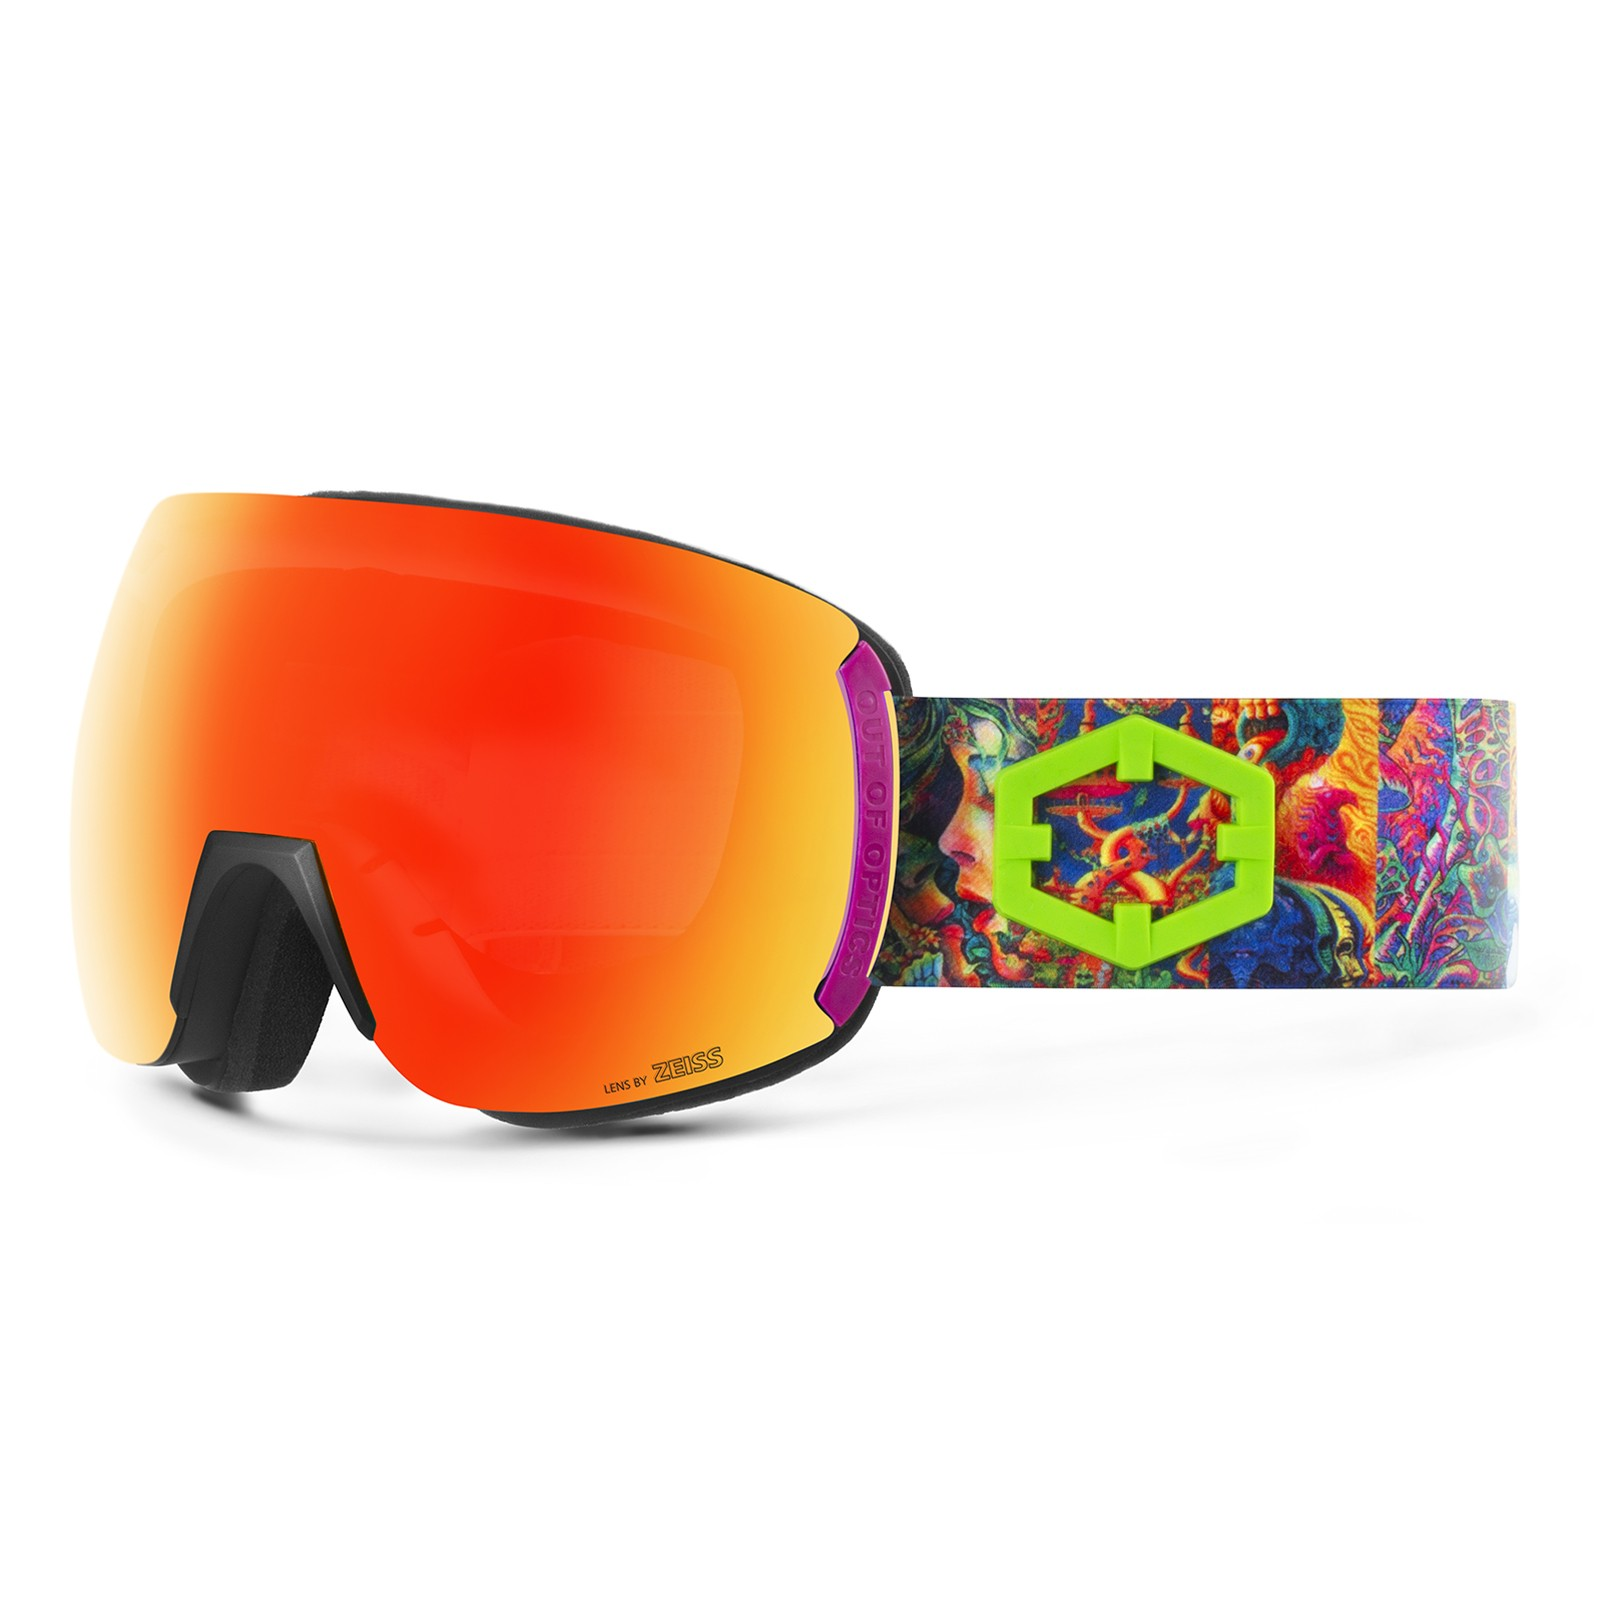 Earth Lsd Red mci goggle